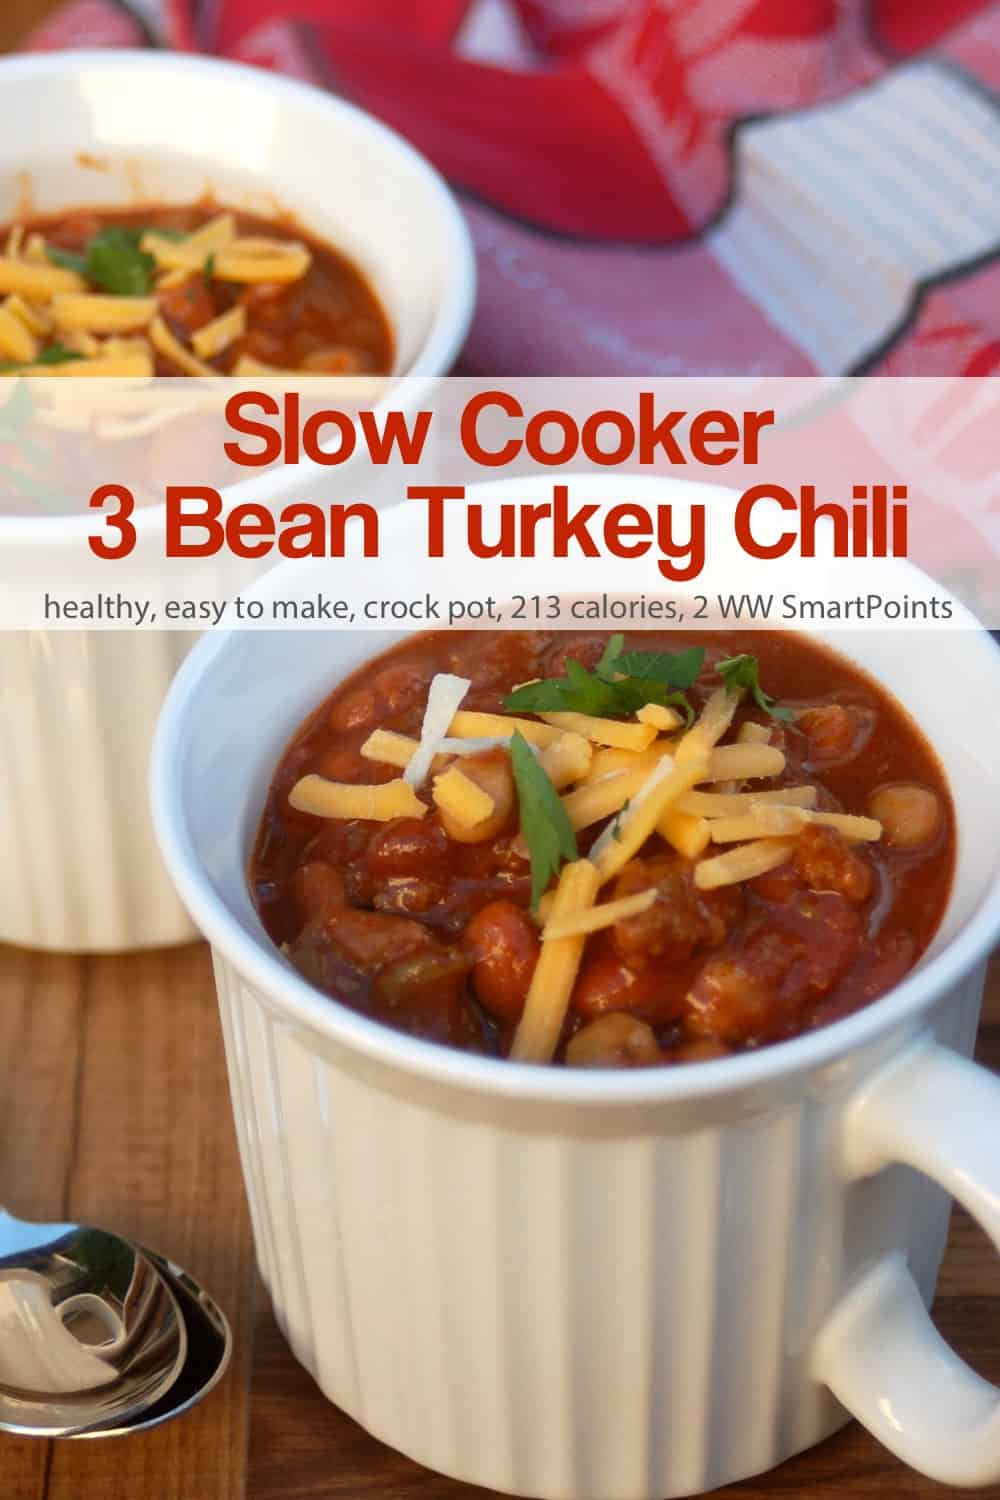 This easy, healthy Slow Cooker 3 Bean Turkey Chili is a great candidate to make-ahead as a freezer meal. I was reminded just how wonderful it is to have yummy foods like this in the freezer, ready and waiting for those nights I'm too tired, or unmotivated, to cook! #slowcooker3beanturkeychili #chili